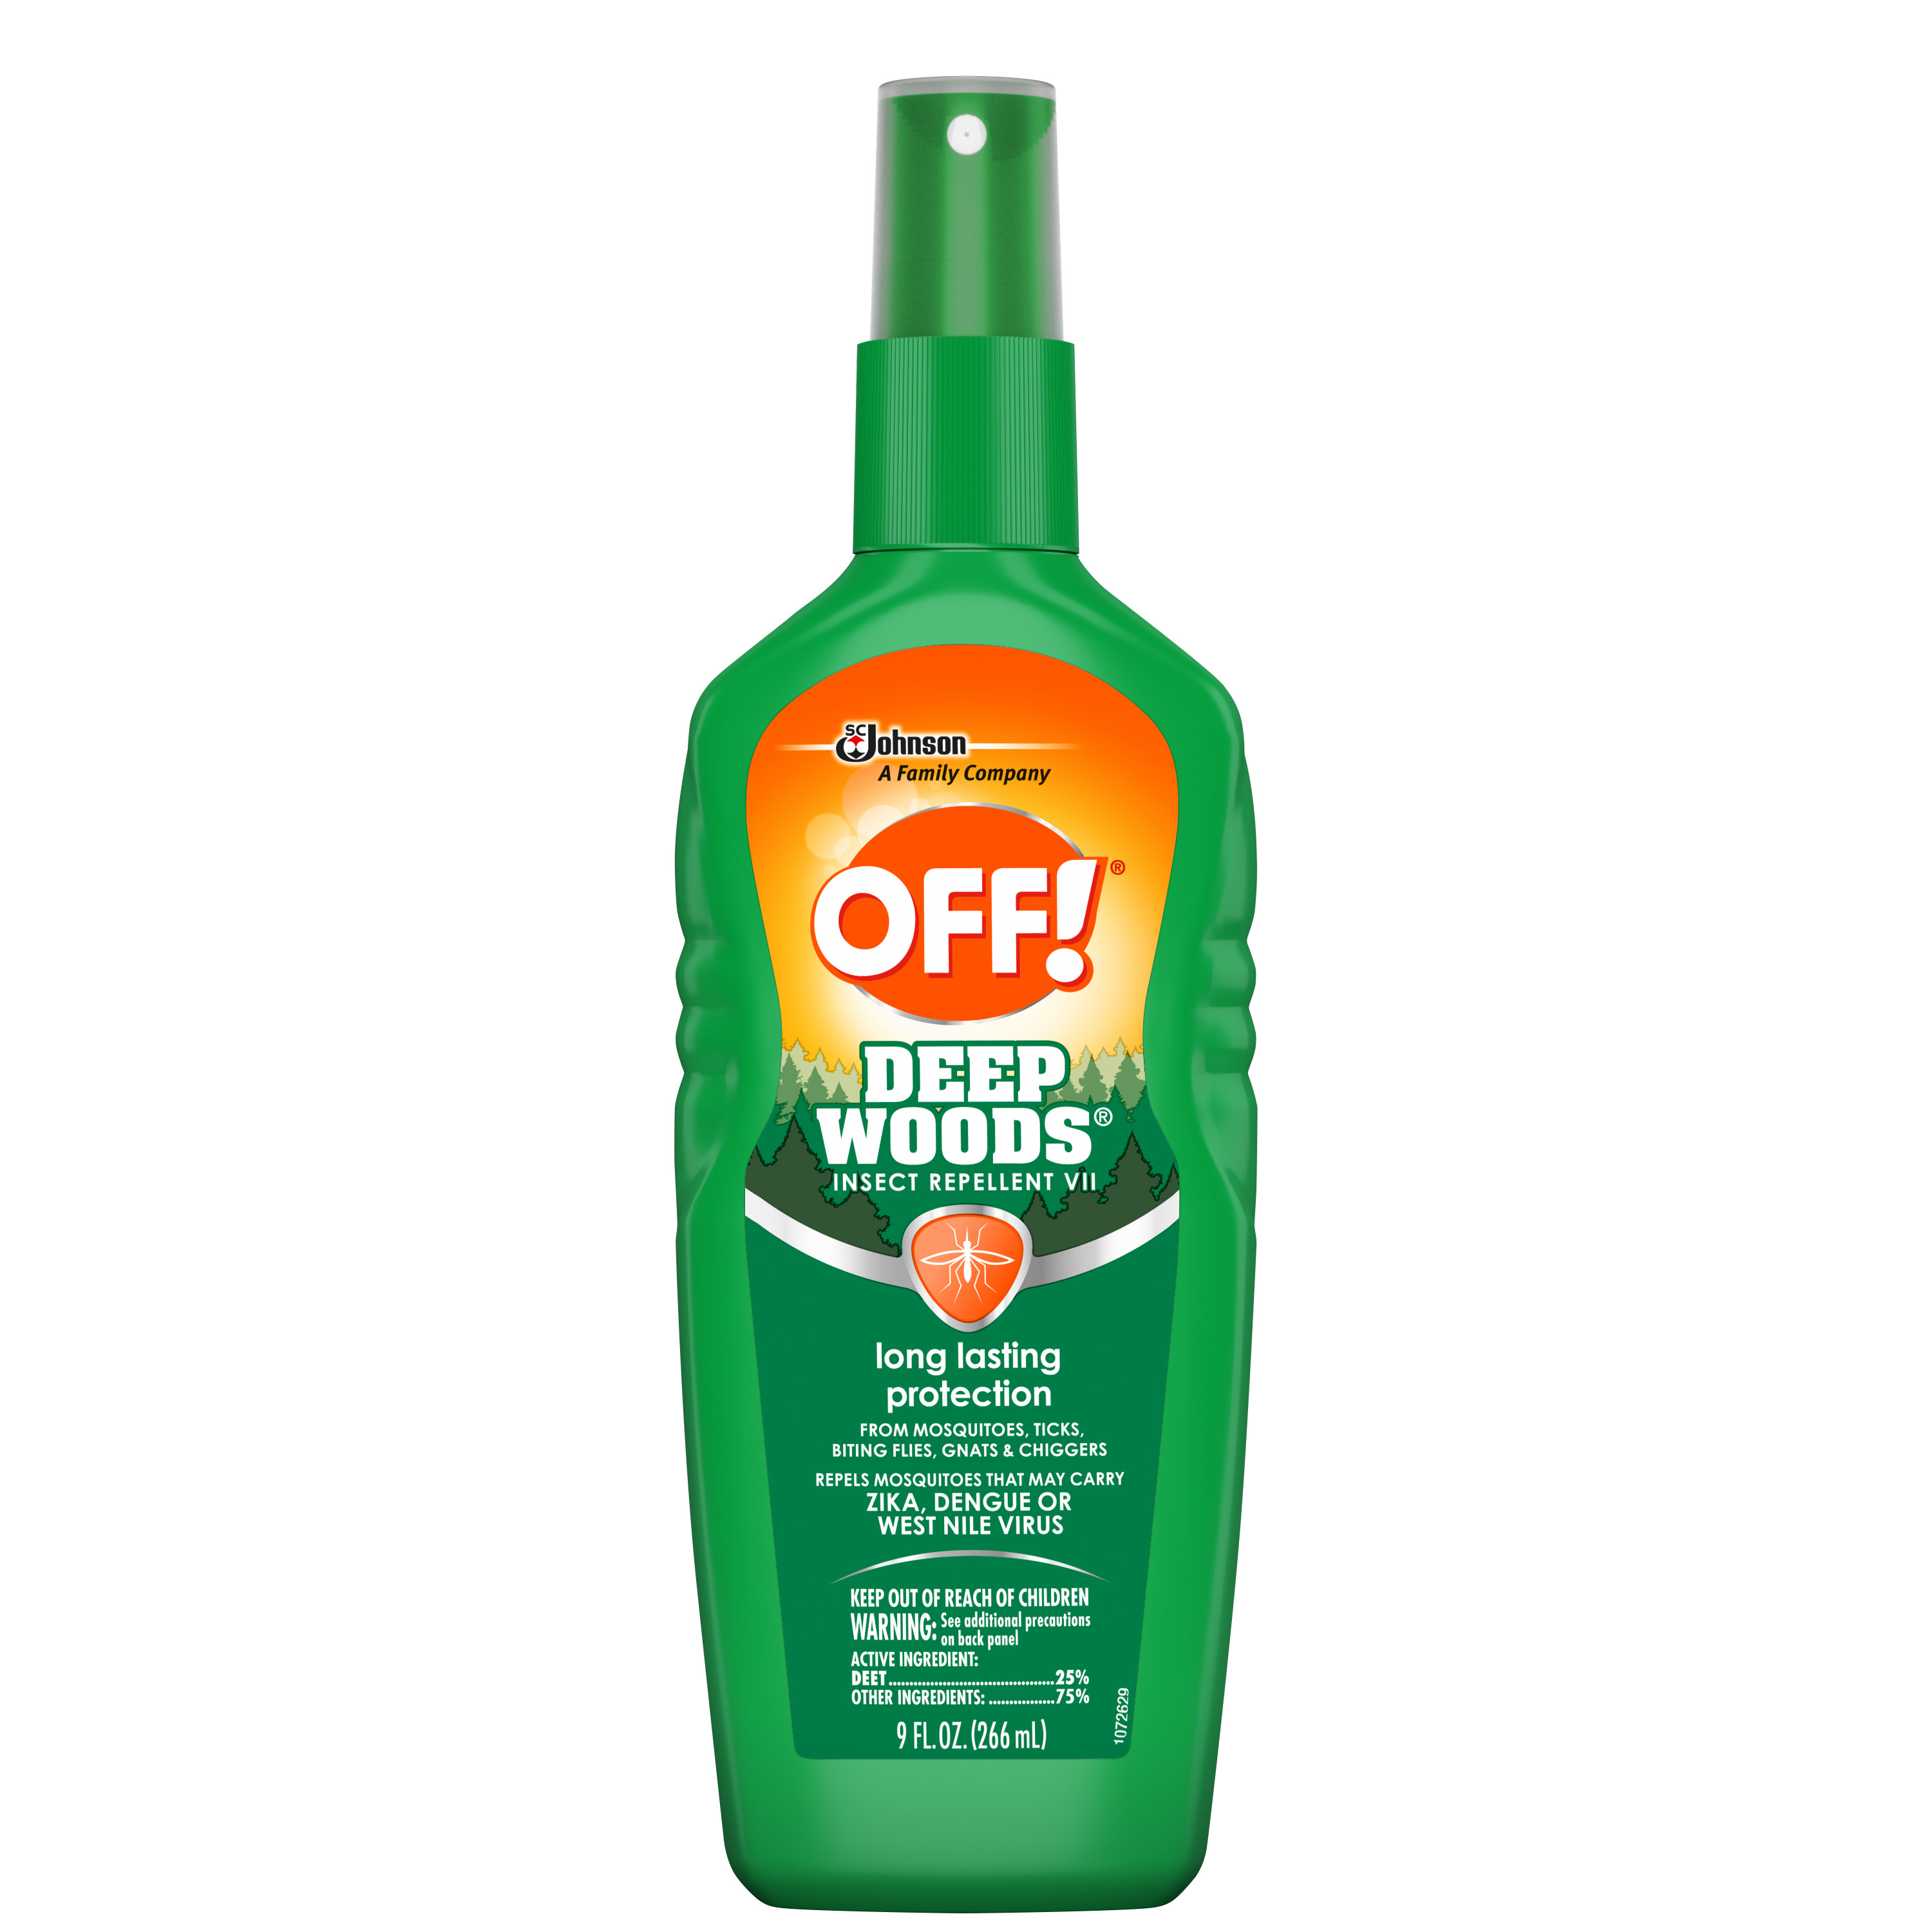 OFF! Deep Woods Insect Repellent VII Pump Spray, 9 oz